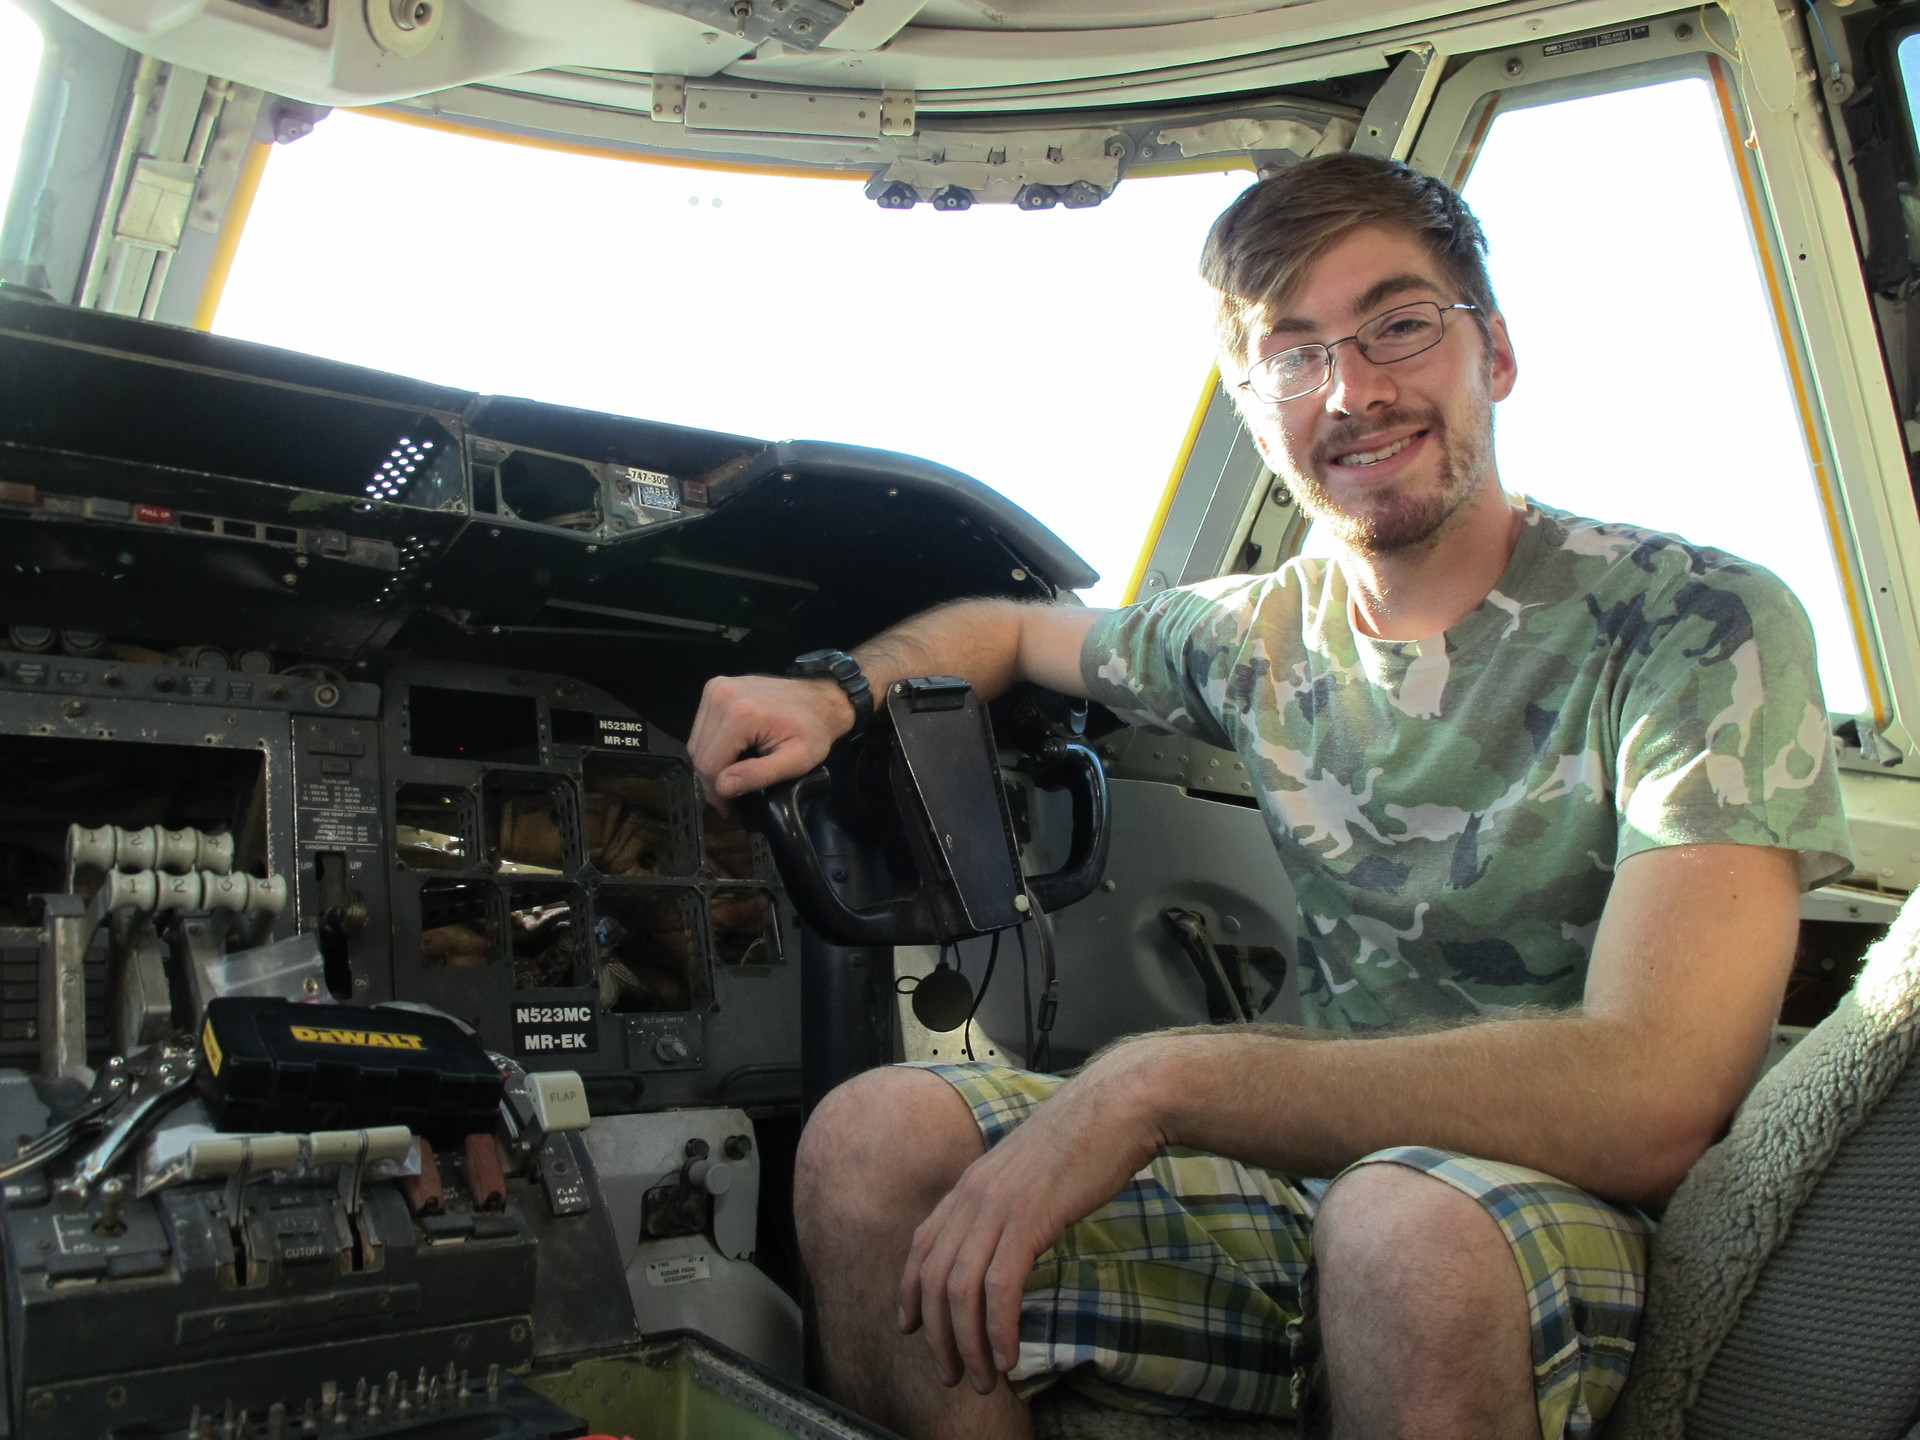 Volunteer Nick Avila of San Francisco sits in the 747 cockpit that he's helping to fix up for Burning Man.